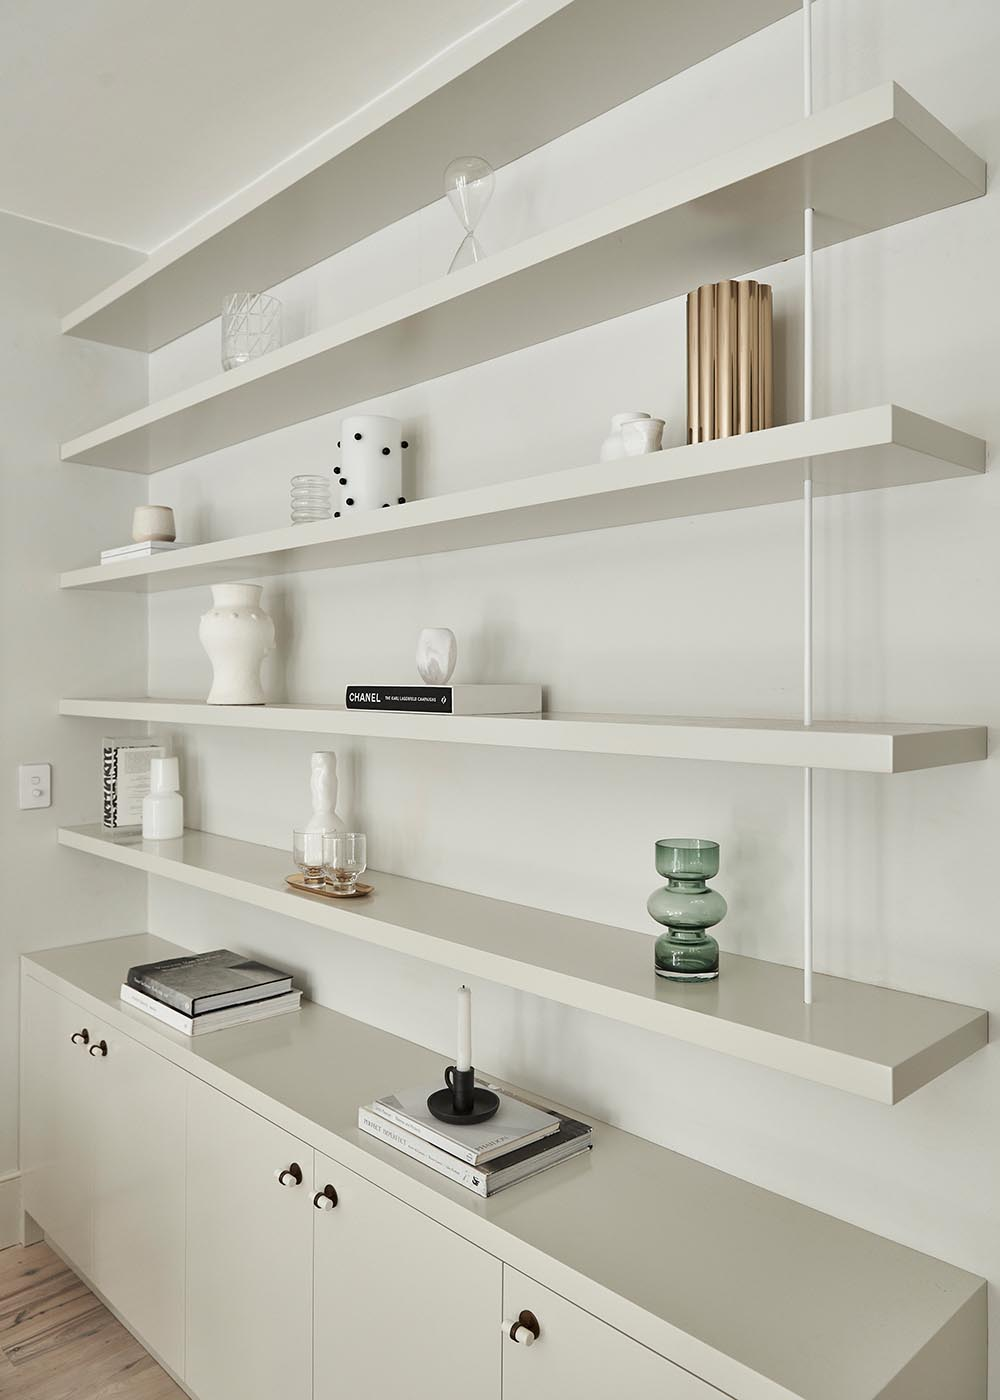 Custom cabinetry and wall shelving almost seamlessly blend into the wall, allowing the decorative objects to stand out.